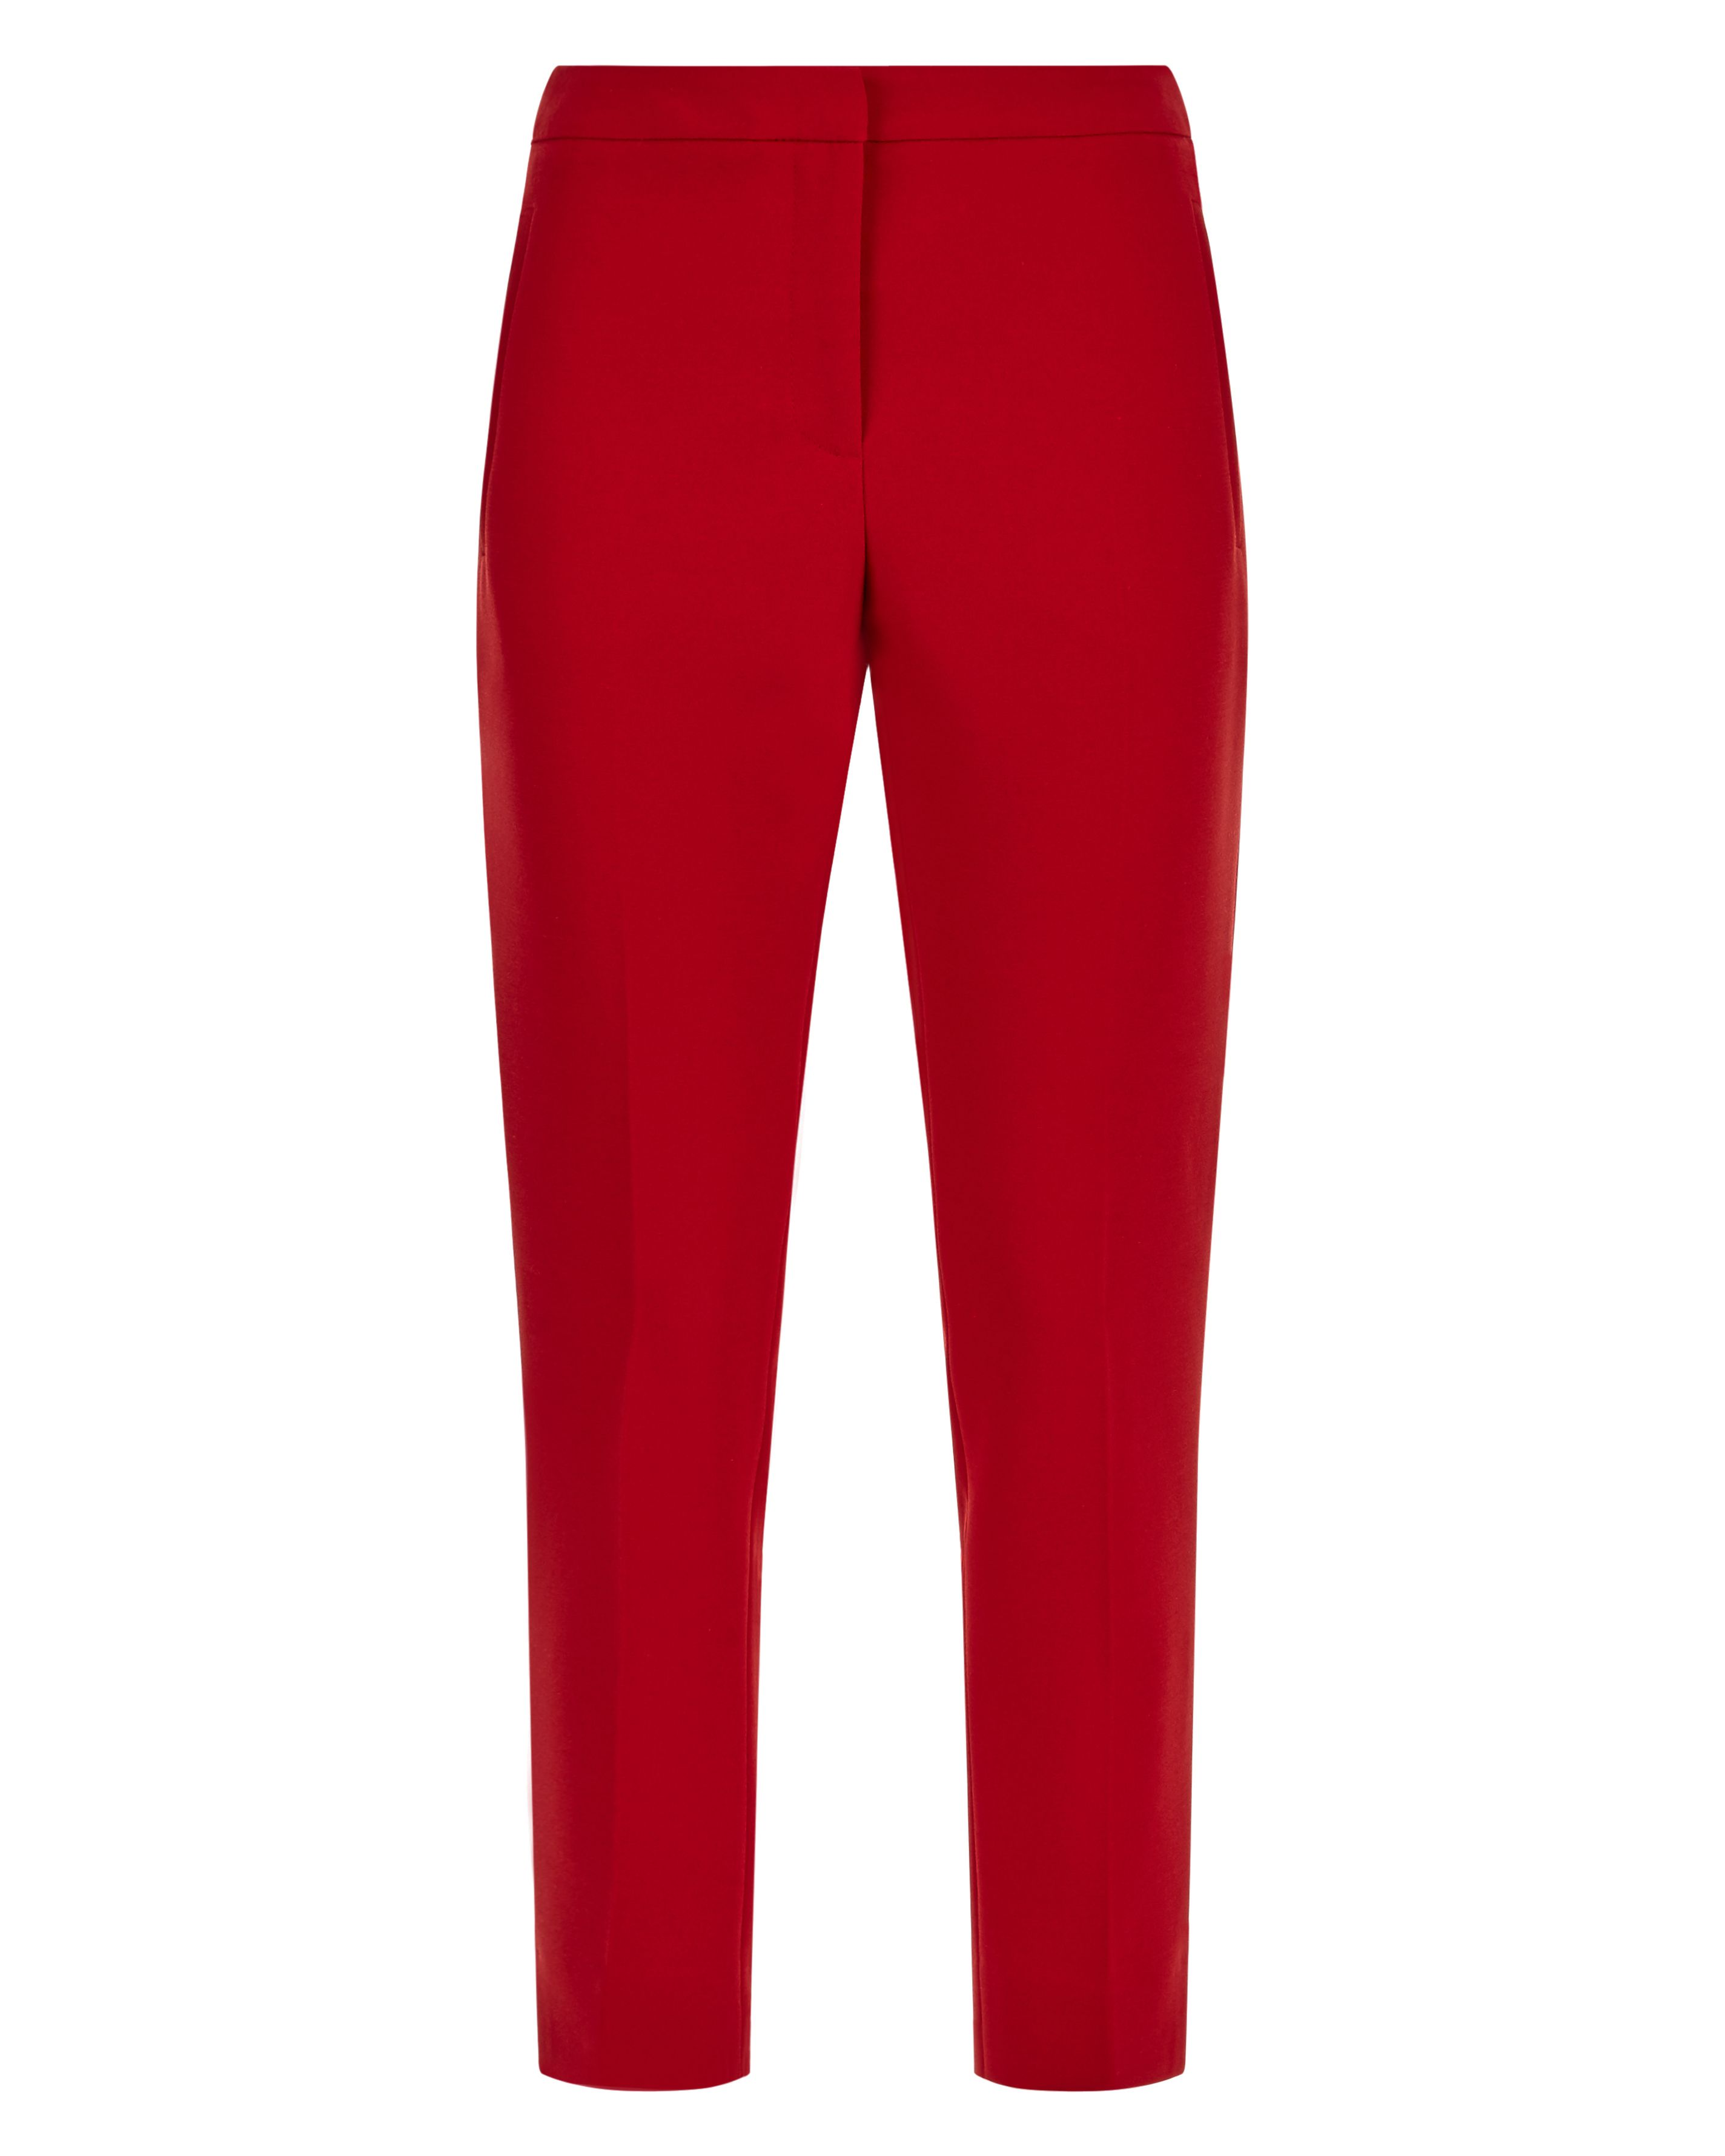 Jaeger Slim Cigarette Trousers, Red